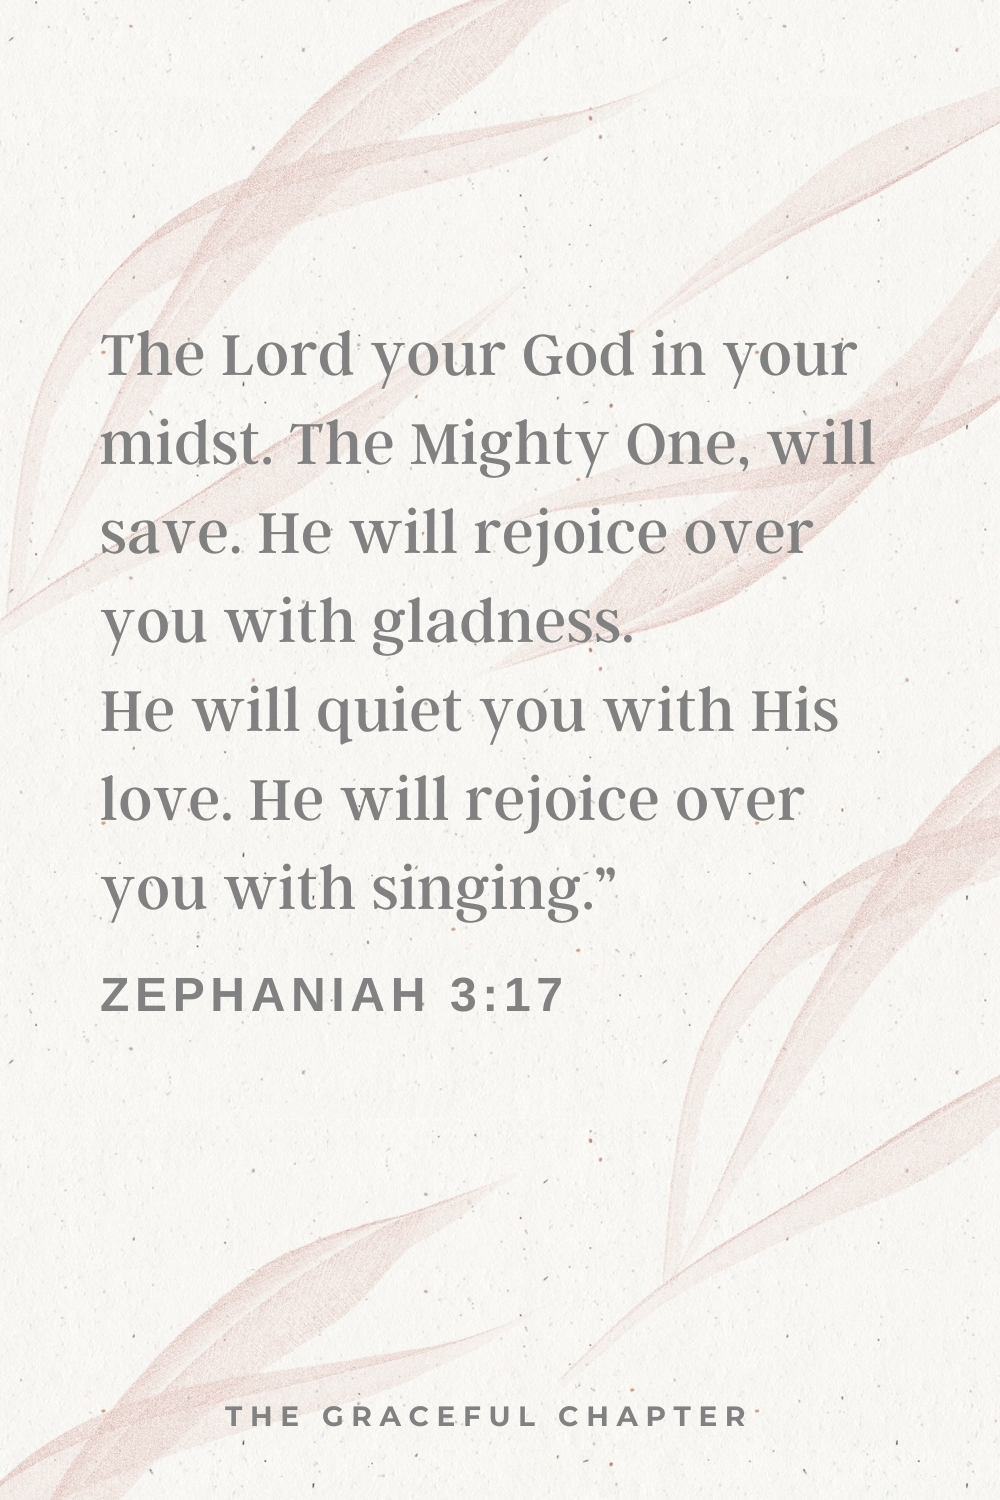 """The Lord your God in your midst, The Mighty One, will save; He will rejoice over you with gladness, He will quiet you with His love, He will rejoice over you with singing.""""  Zephaniah 3:17"""